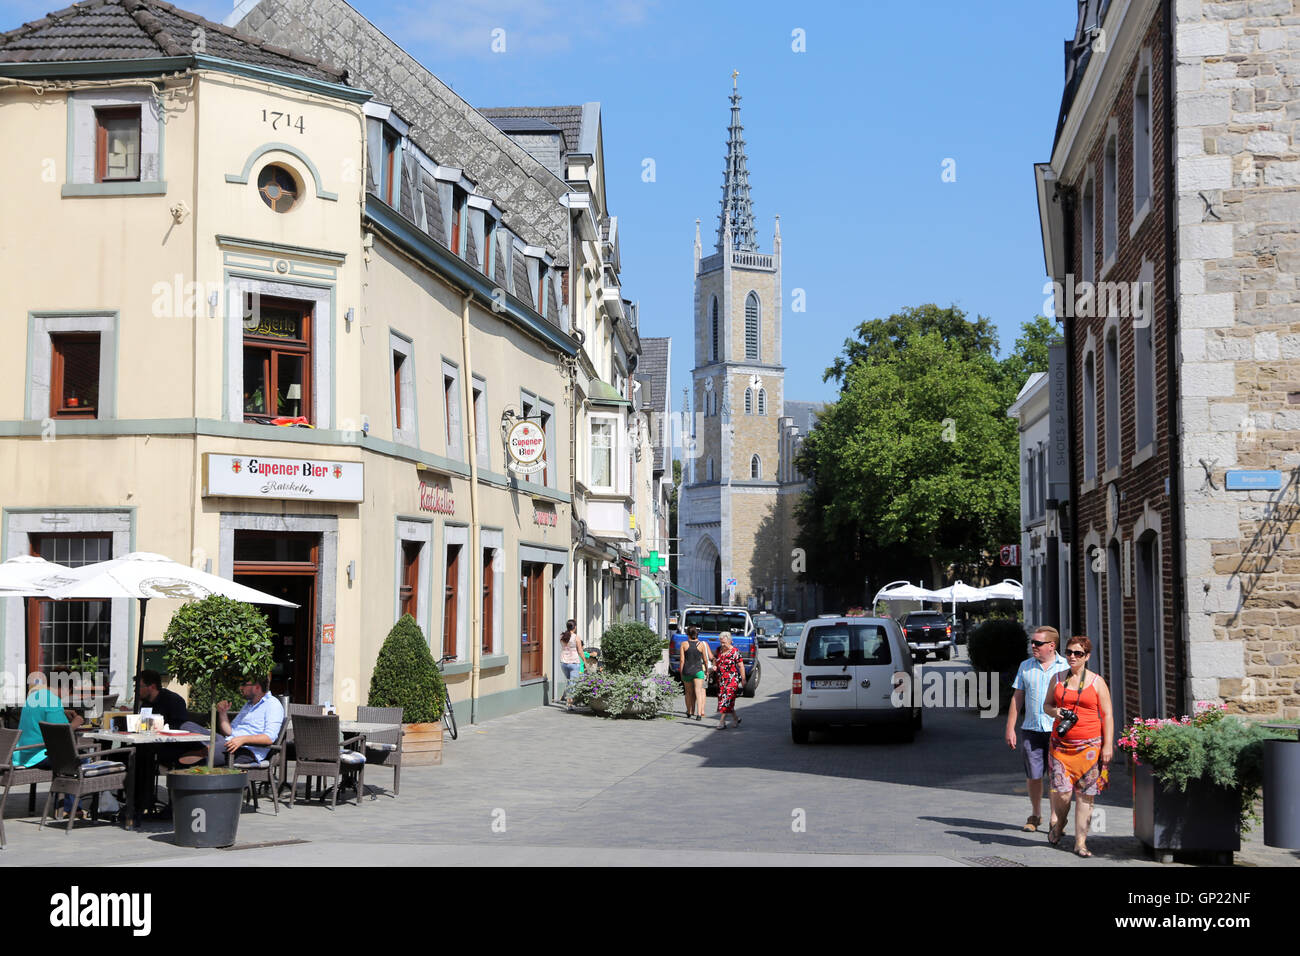 Old town of Eupen/Belgium with Protestant Peace-Church. Capital of the German-speaking Community in Belgium. Stock Photo